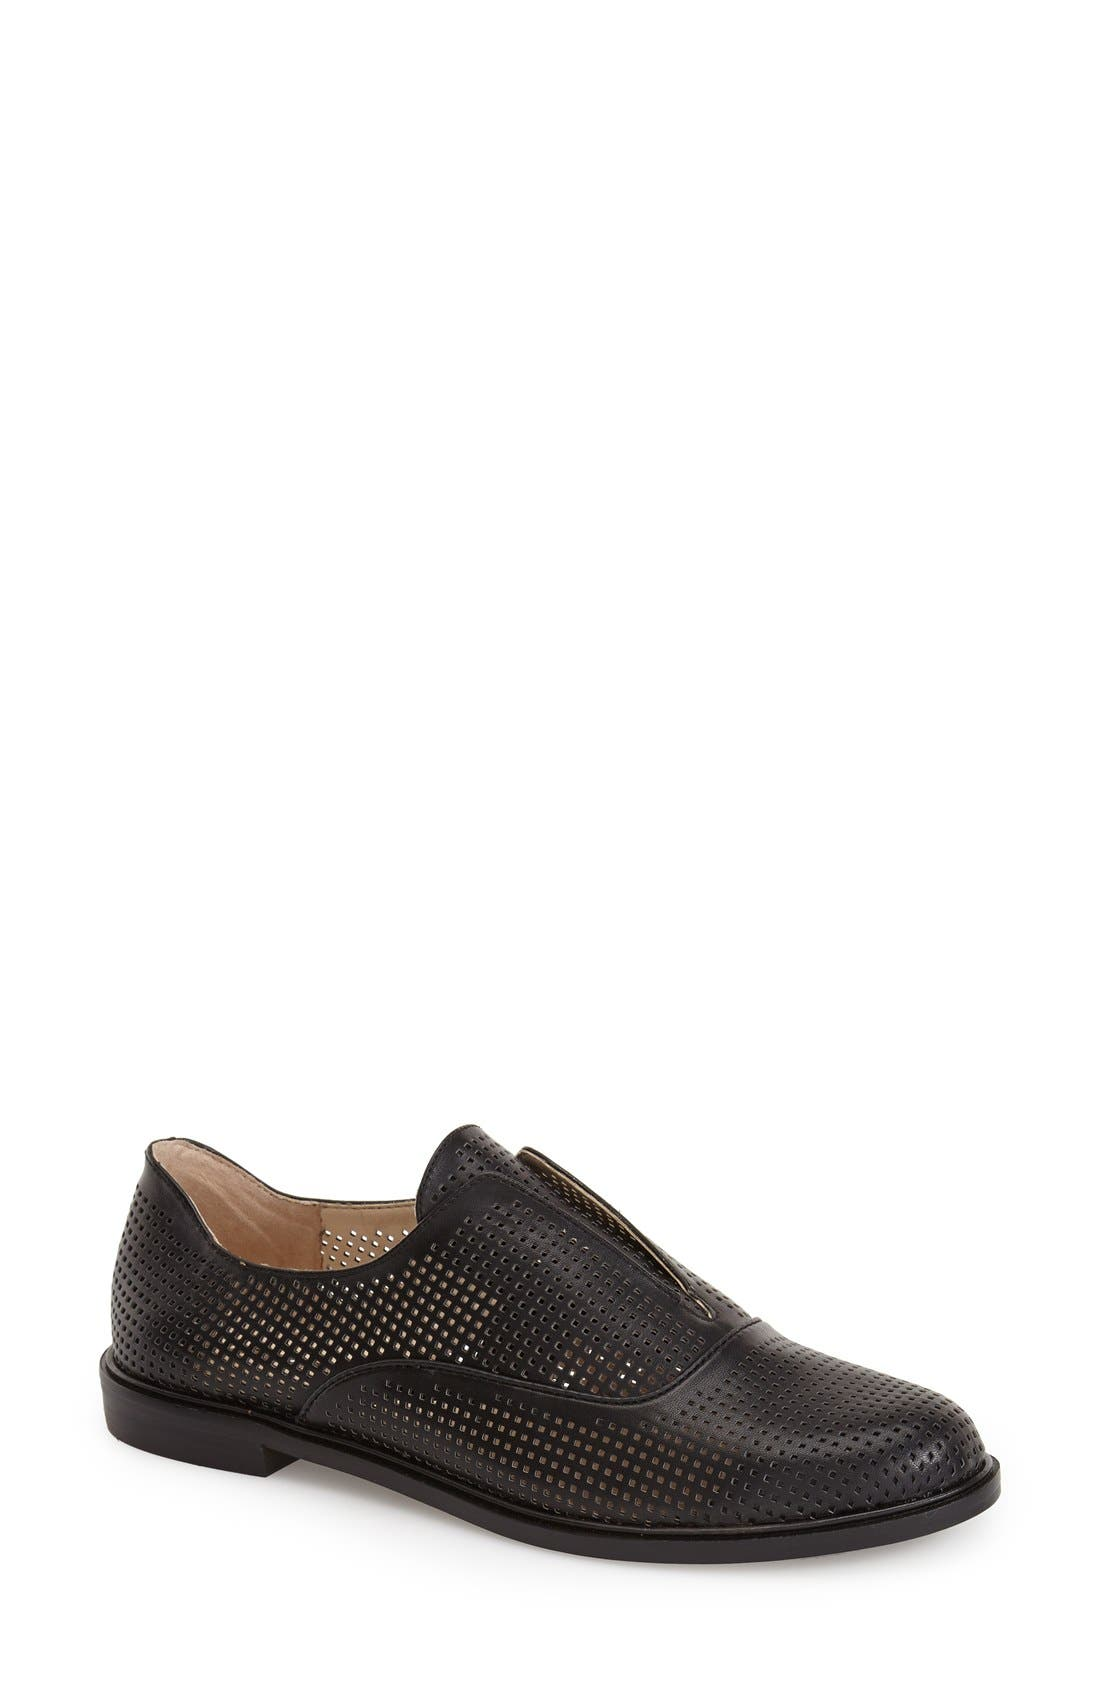 BCBGENERATION 'Brisk B' Perforated Oxford, Main, color, 001